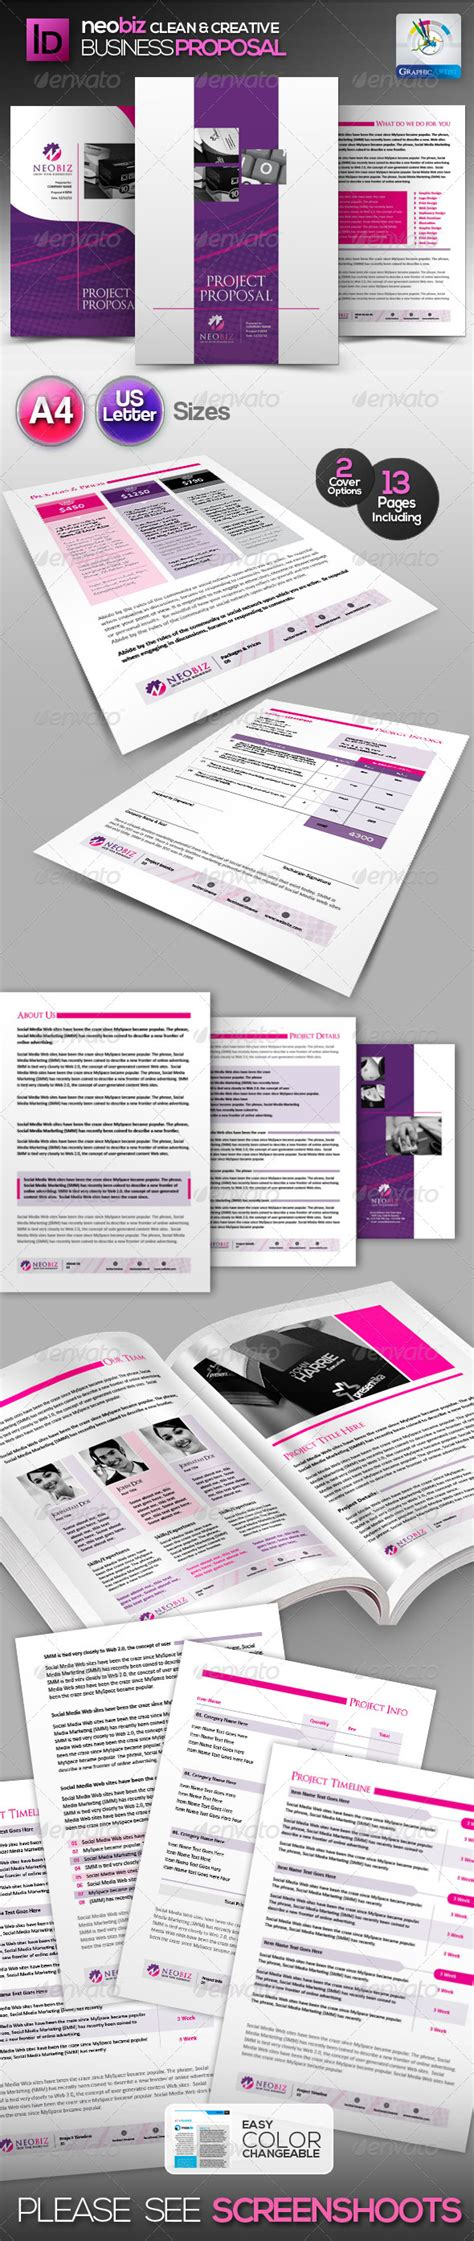 50 professional business proposal templates